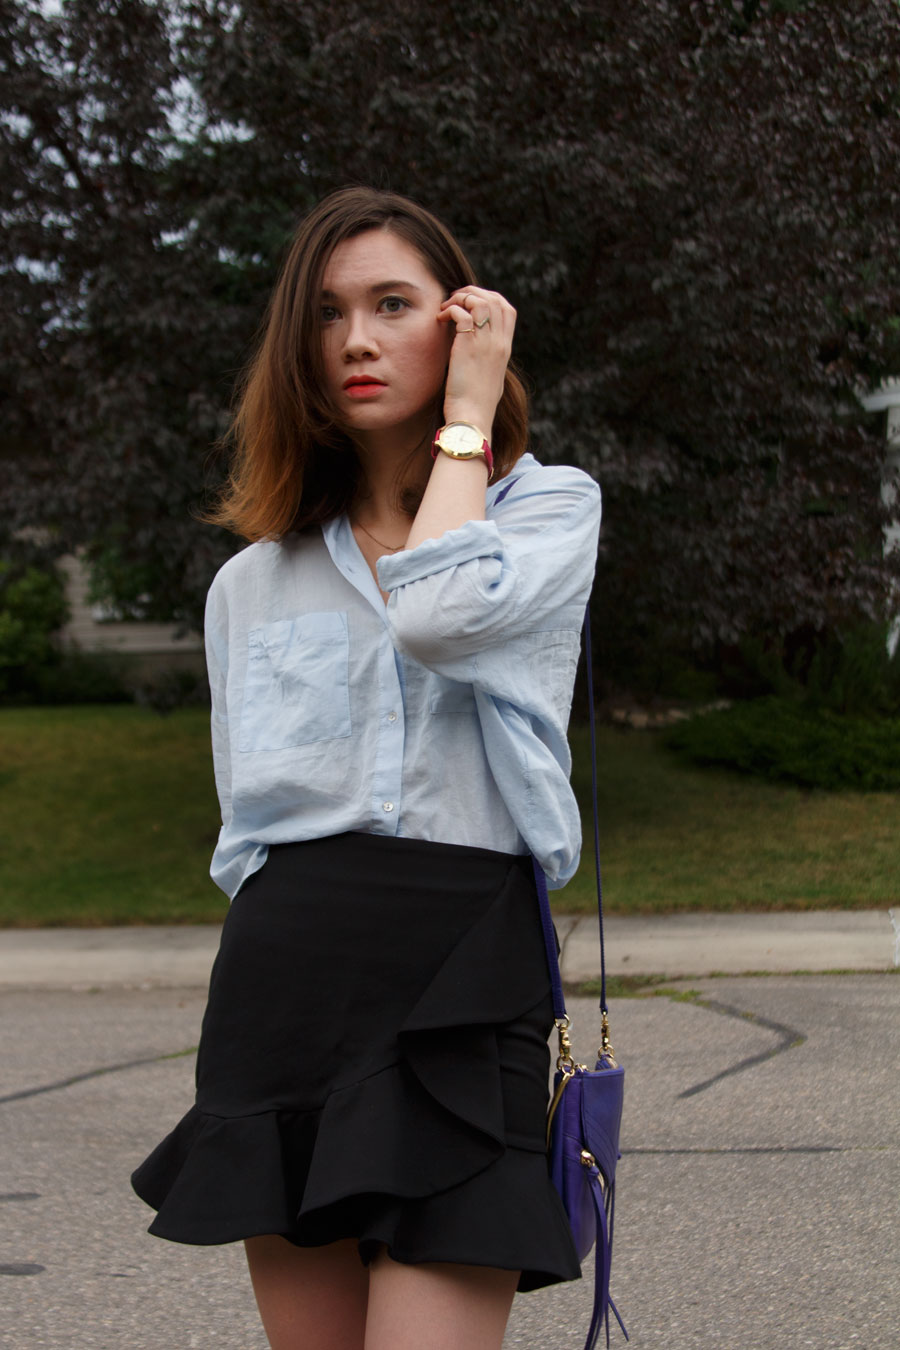 university fashion, day to night, Back to school, zara, frilled skirt, botkier legacy mini crossbody, midi rings, stacking rings, lace up sandals, outfit, fall fashion, work wear,